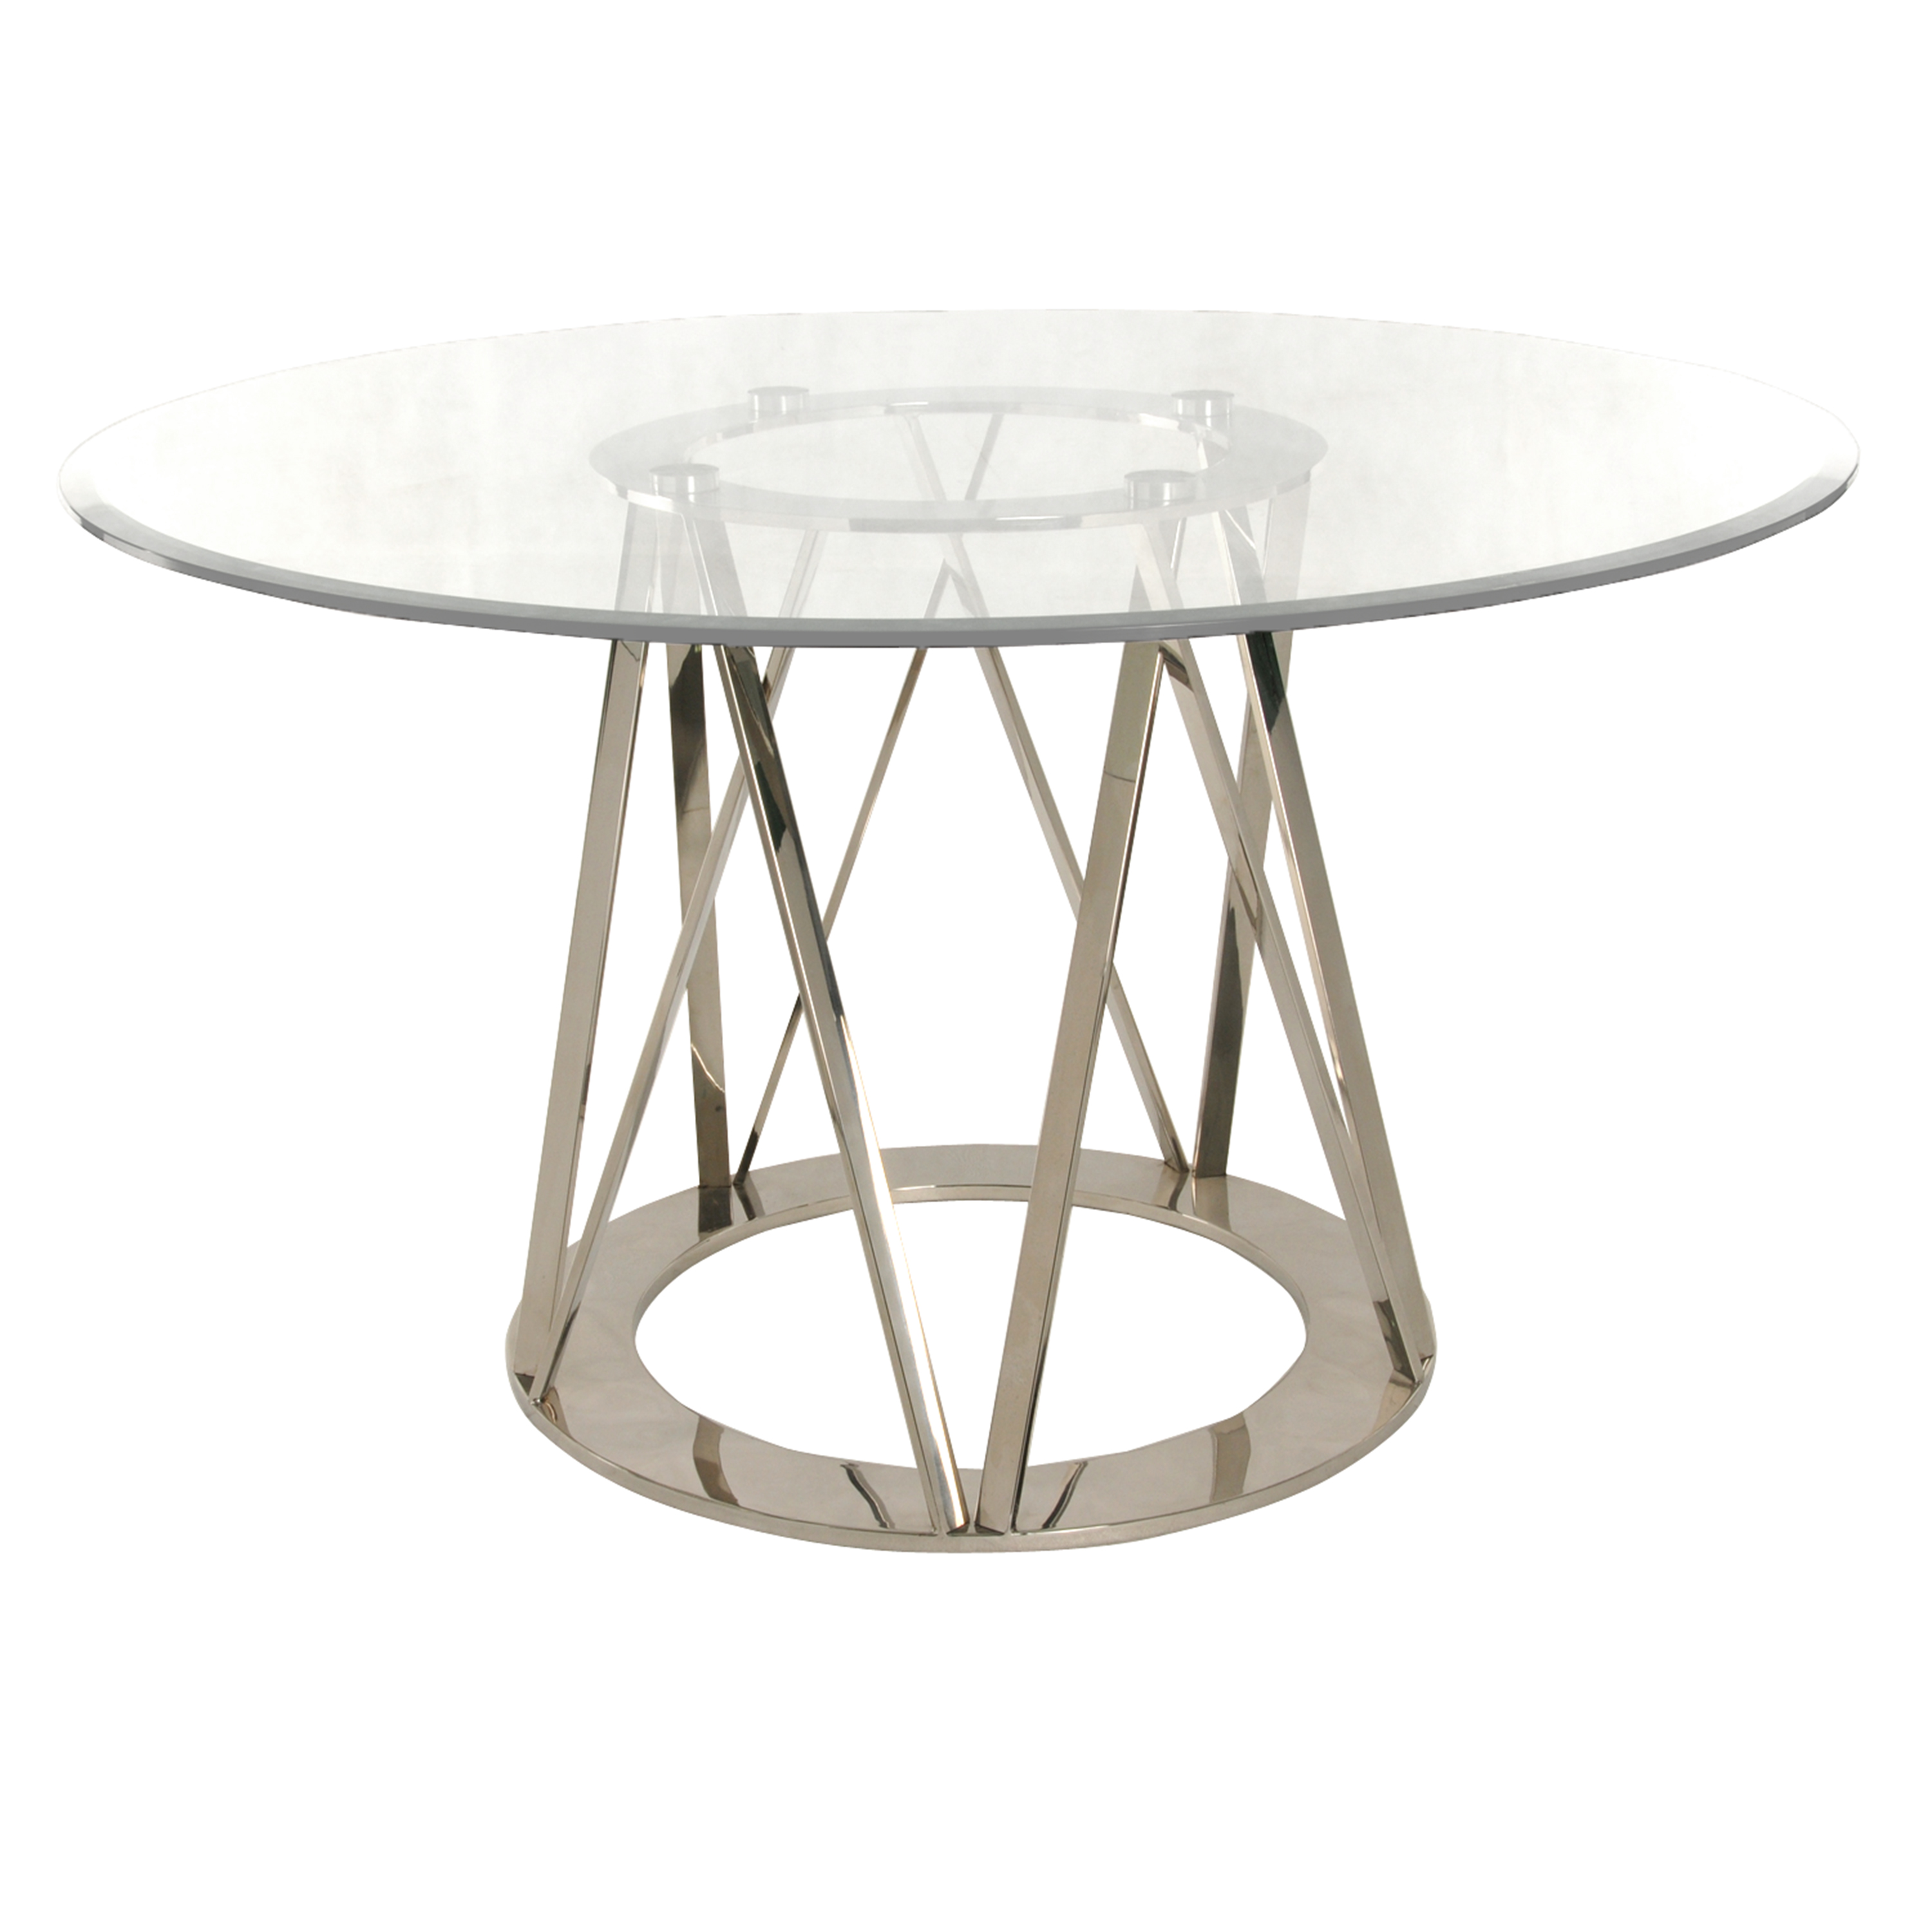 Rolin Round Dining Table, Stainless Steel by NPD